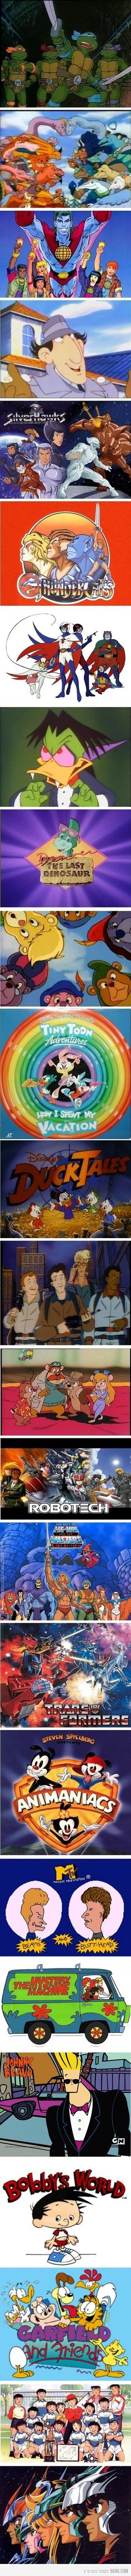 didn't really watch Denver the last dinosaur... or Robotech.... or Bobby's world